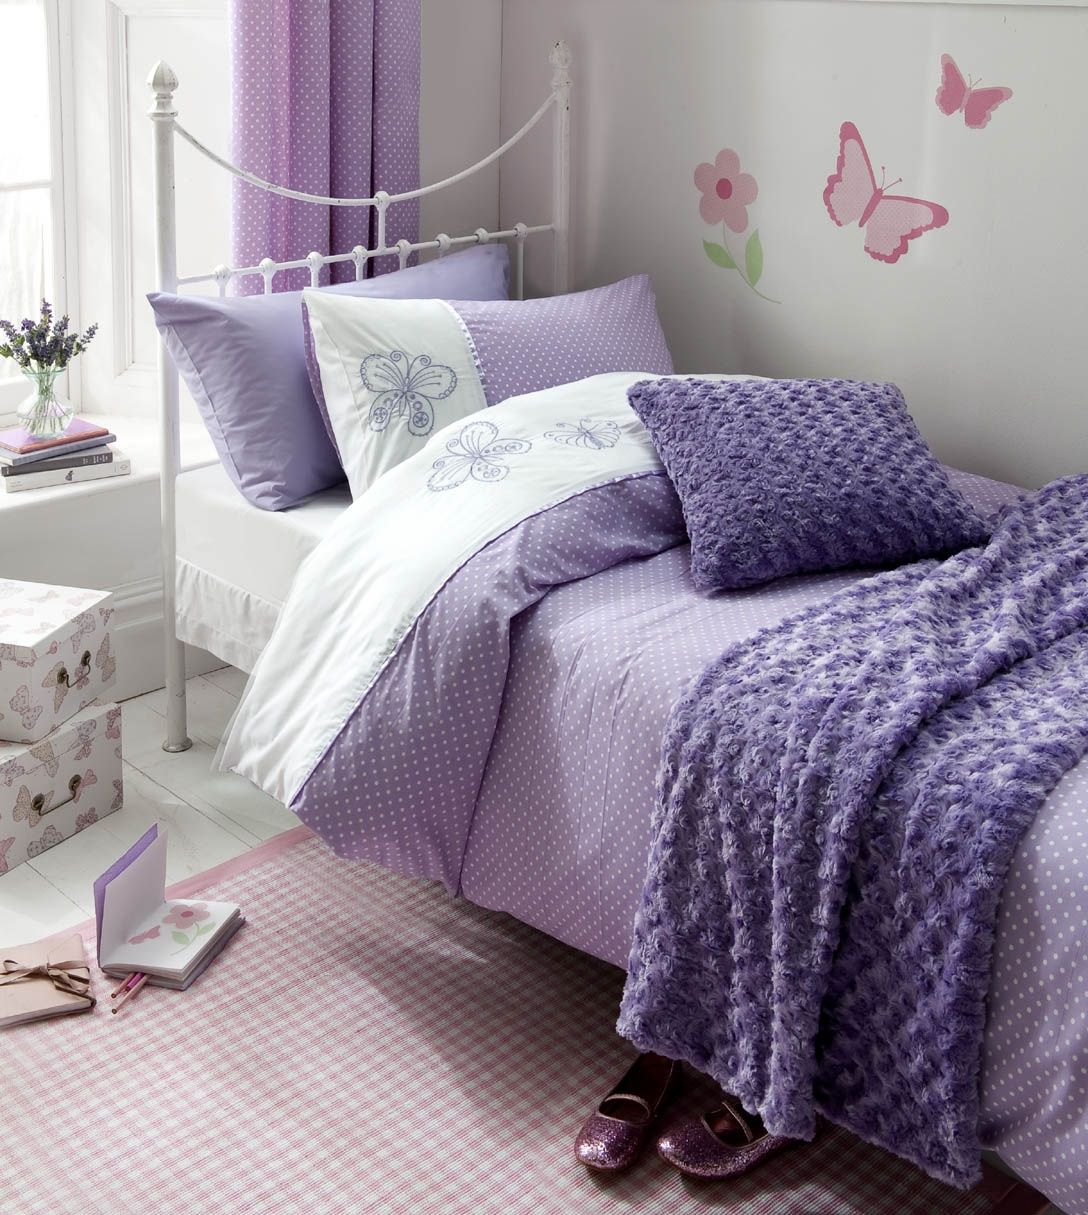 Lilac Bedroom Curtains Childrens Bedding Bedroom Accessories Double Duvet Lilacs